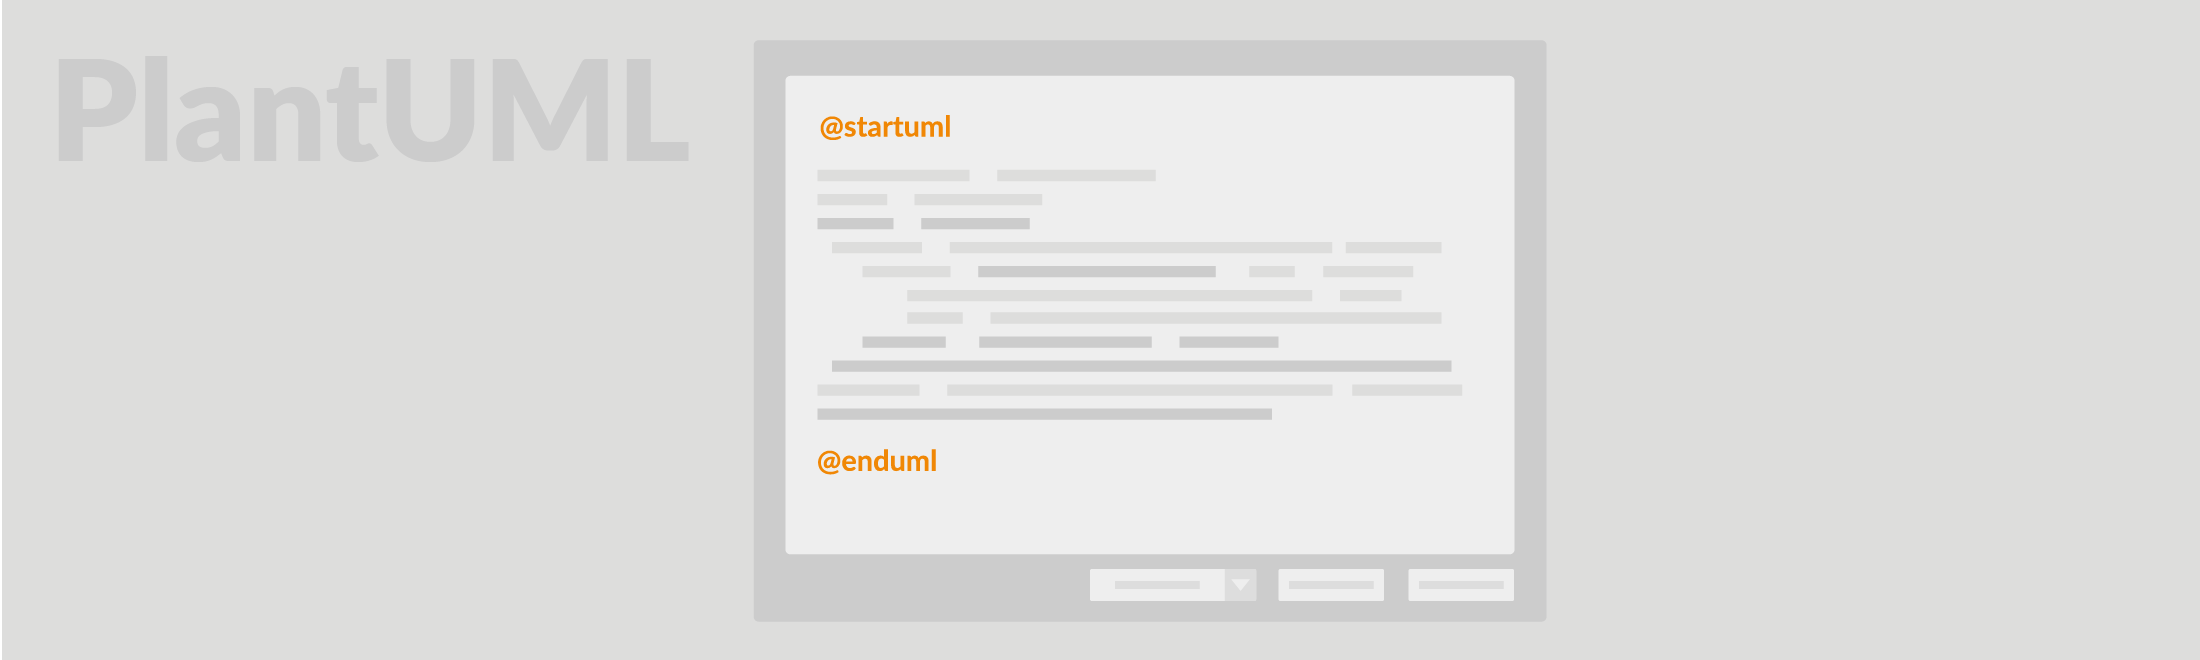 PlantUML is an open source tool where you can specify your UML diagrams in a text format, which looks quite similar to a simple programming language. It is often used by software developers and allows blind developers draw UML diagrams.